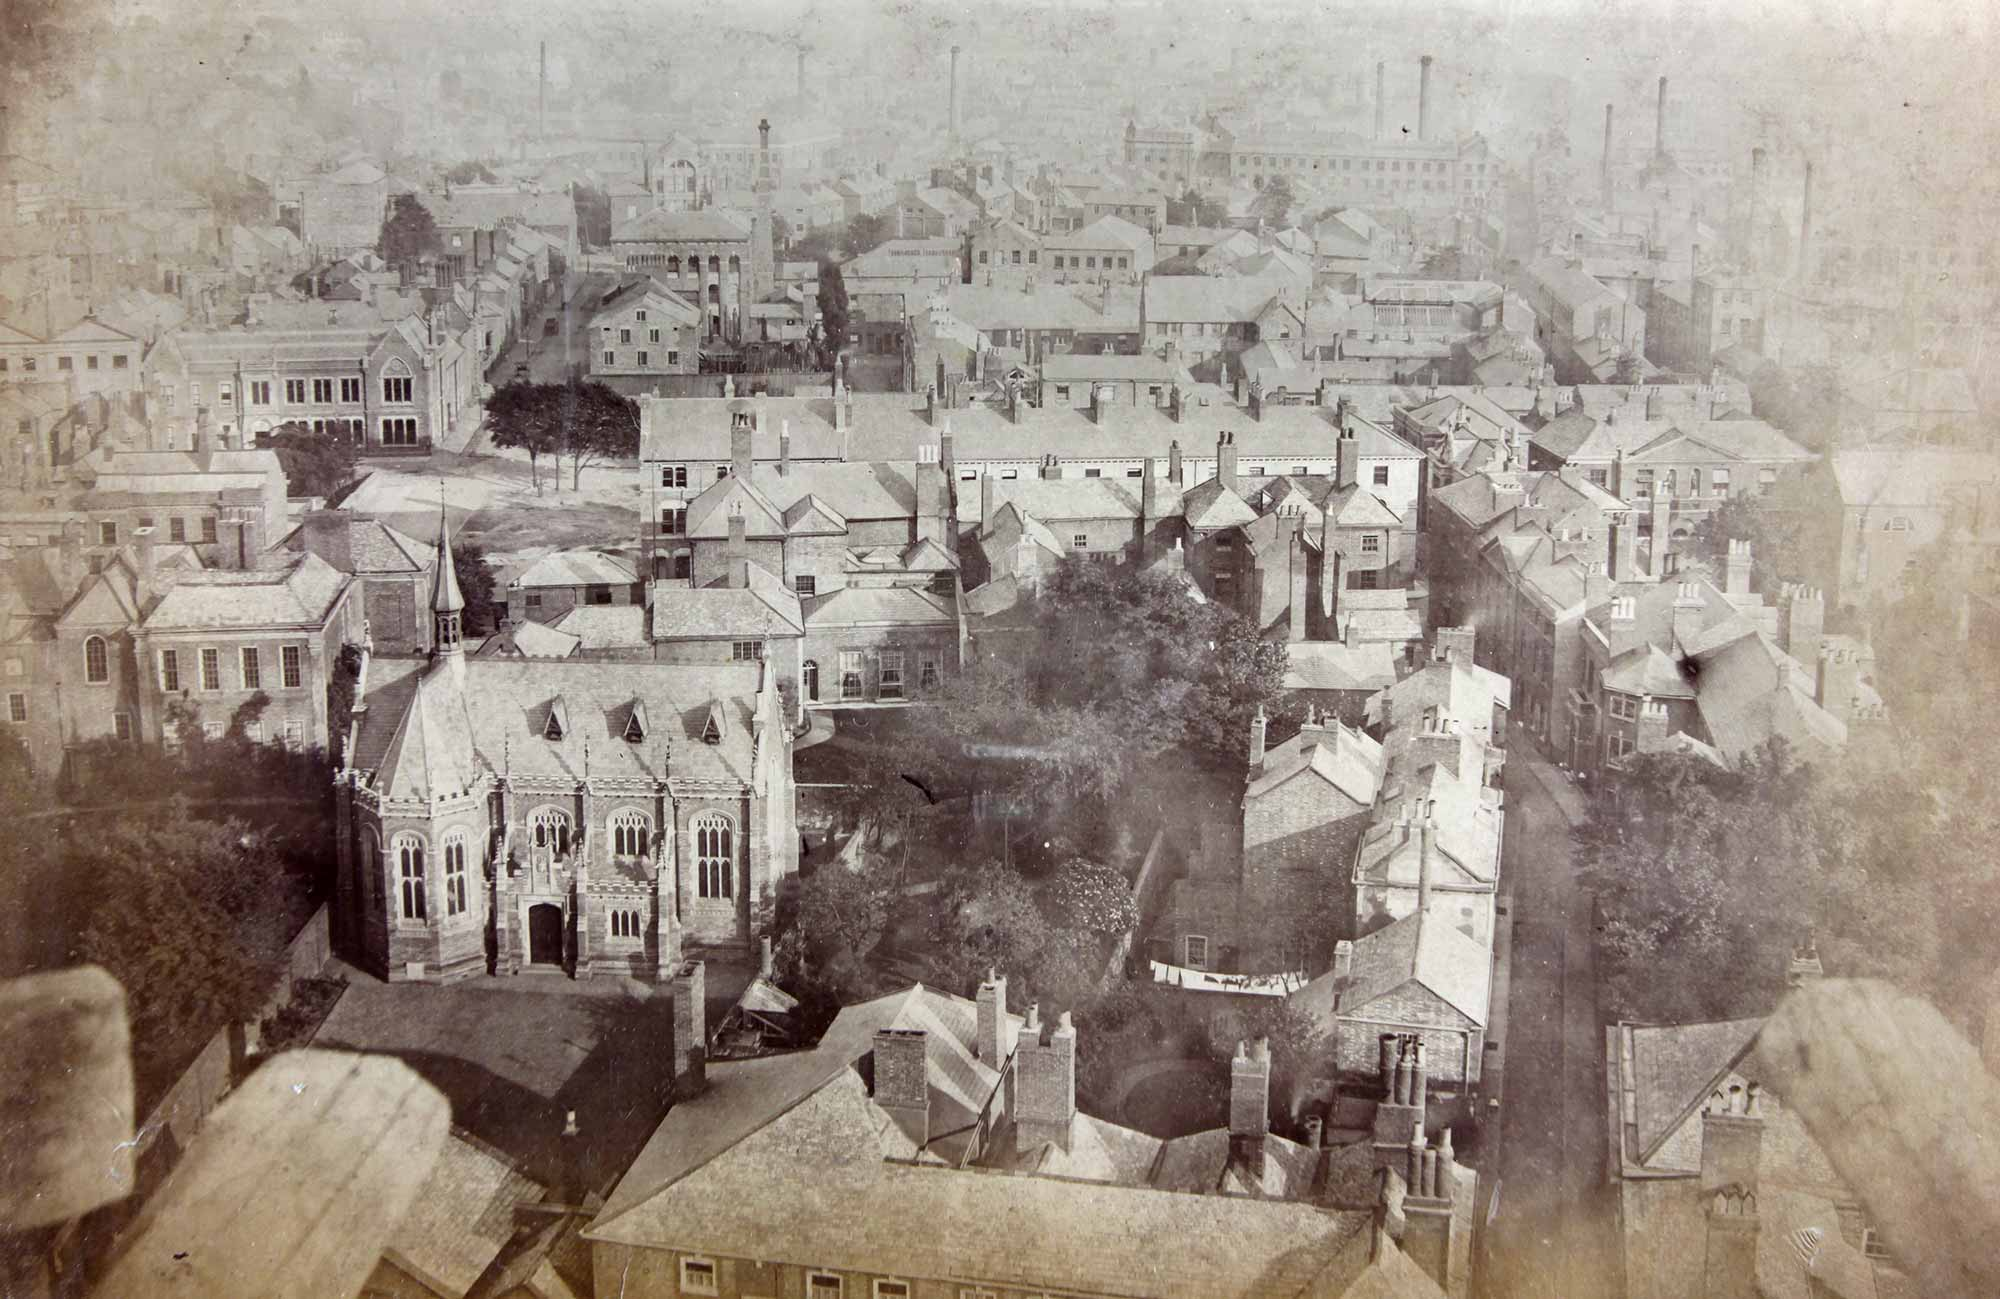 A view across the rear of Friar Lane, taken from the top of the Cathedral spire c.1867 17 Friar Lane is to the middle left with 4 long windows at the back -